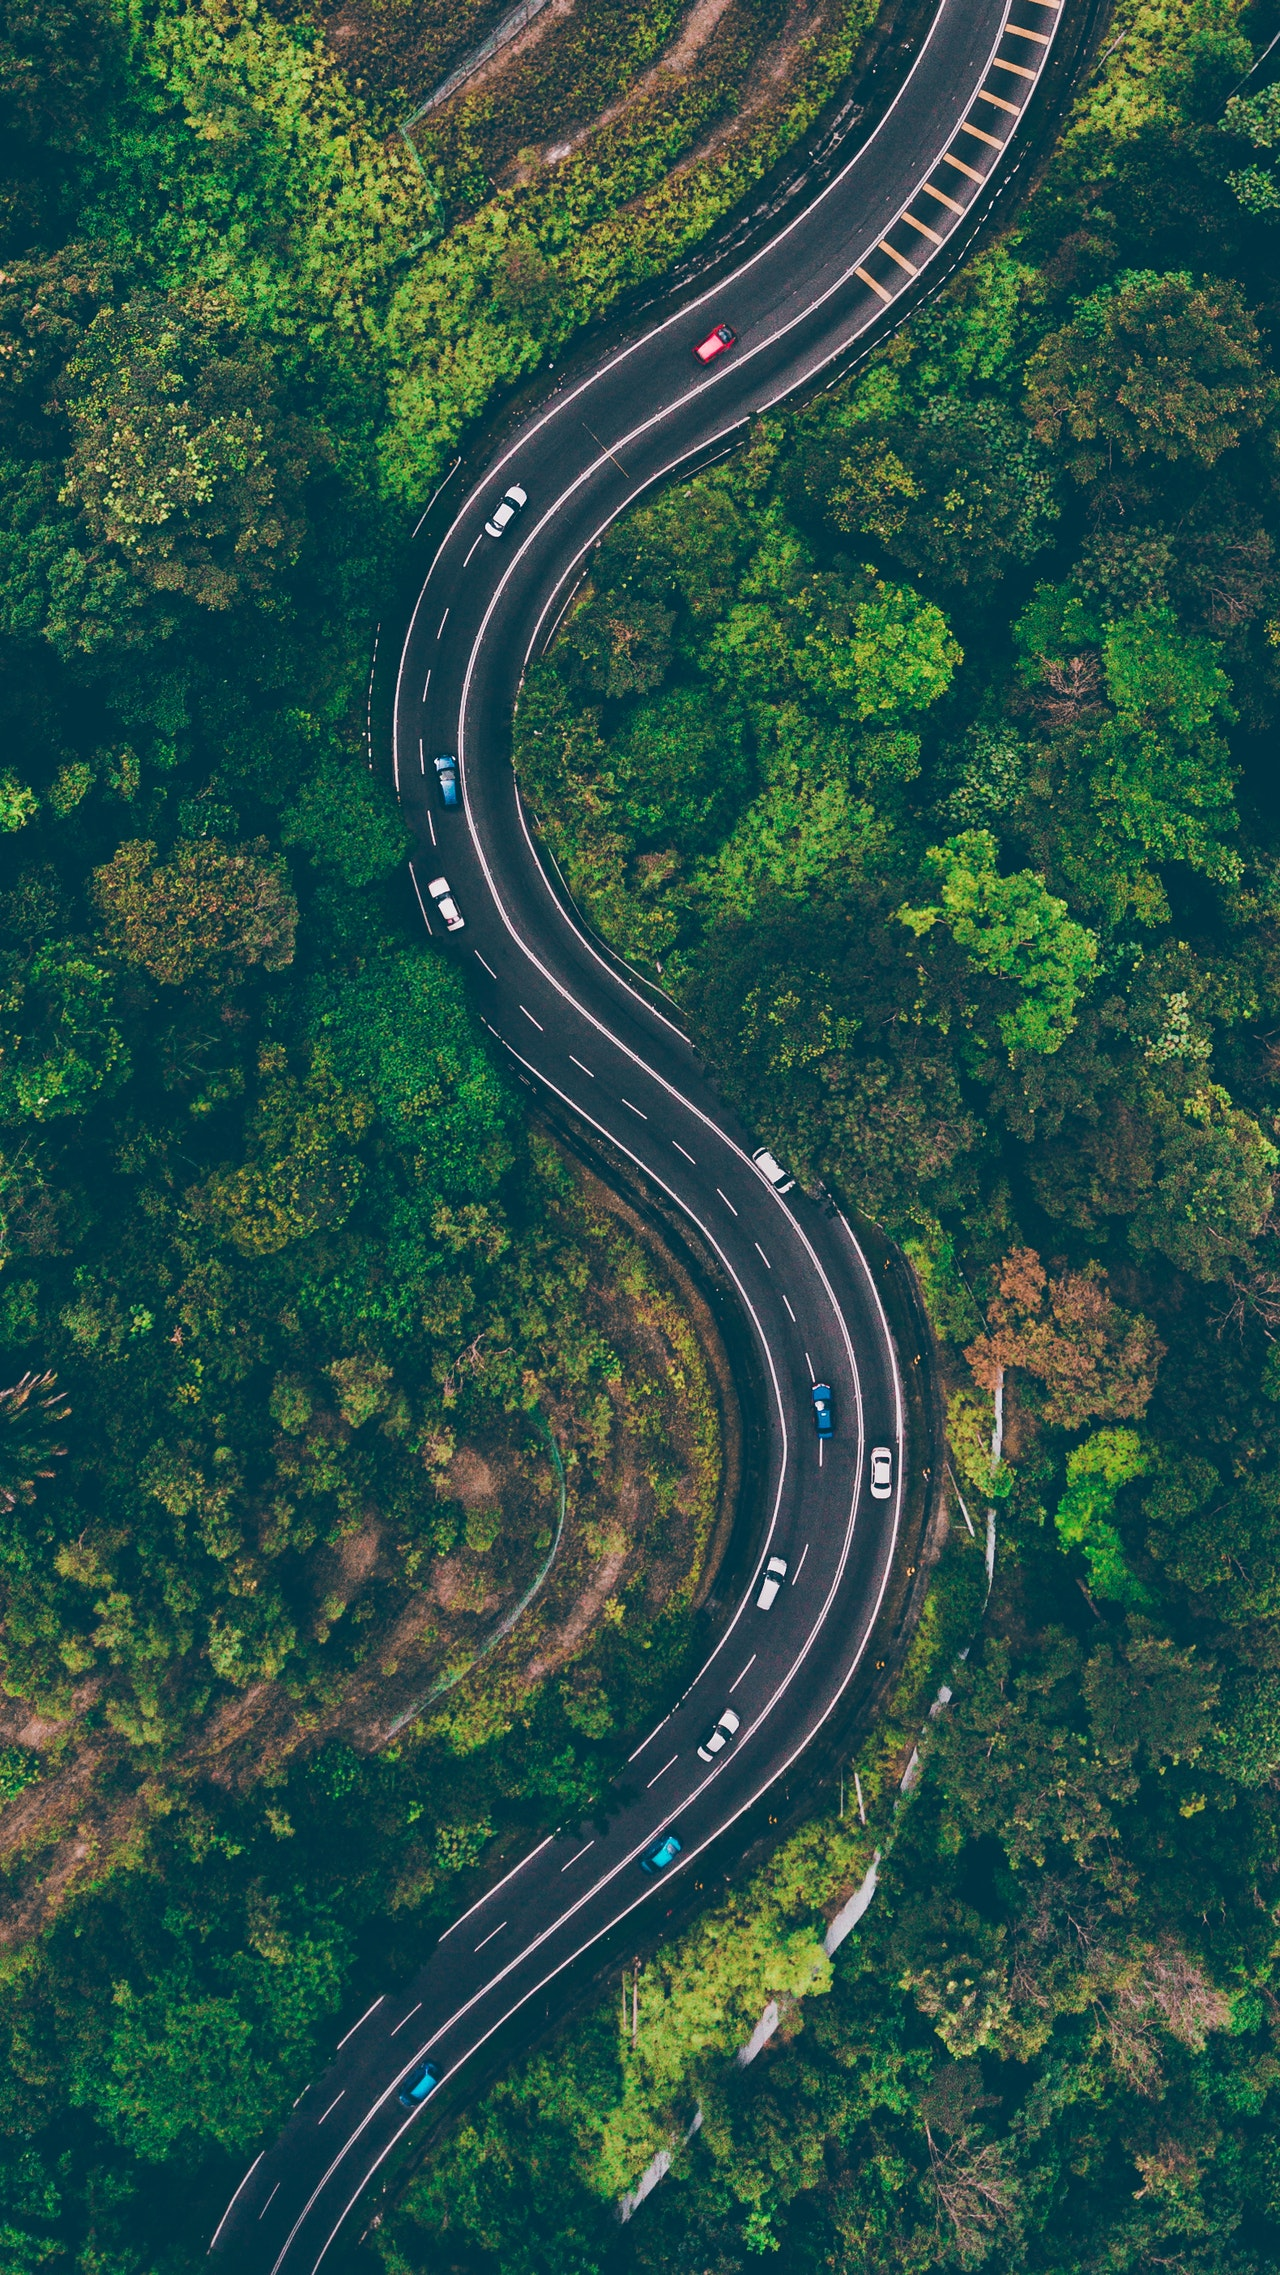 aerial-view-of-road-in-the-middle-of-trees